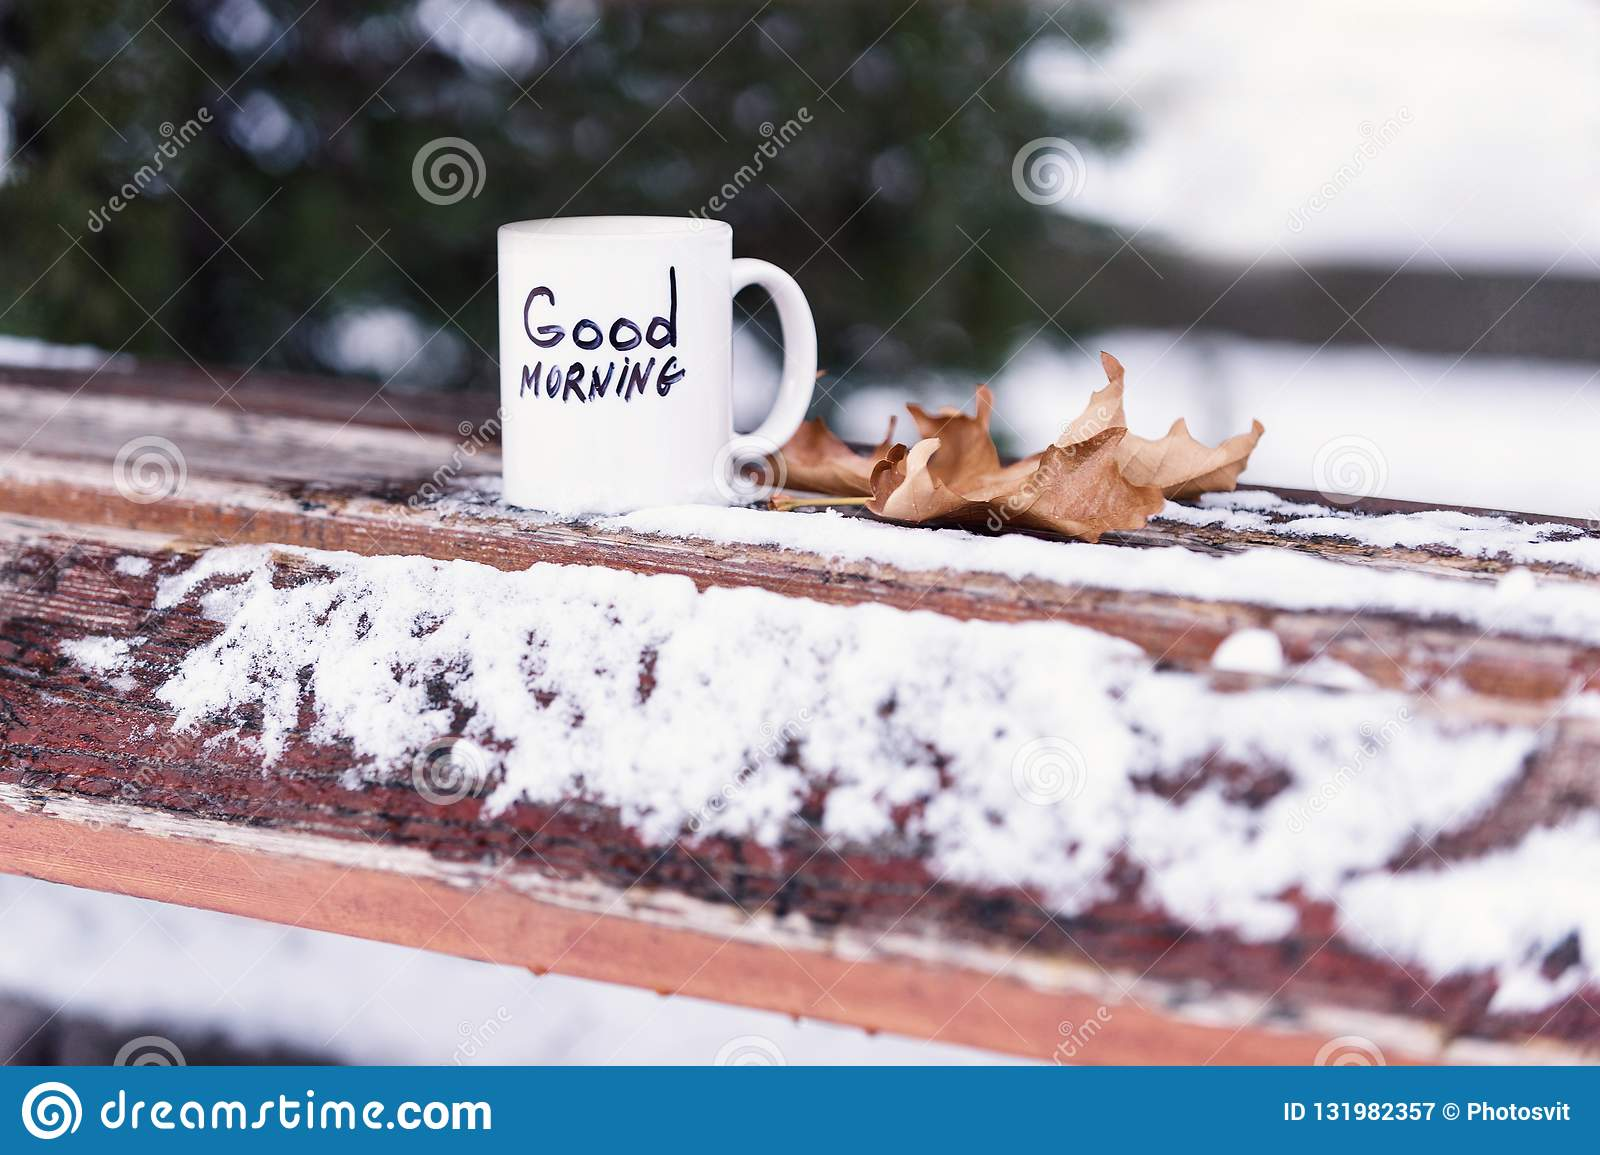 Cup Of Tea Or Coffee With Good Morning Inscription Stock Image